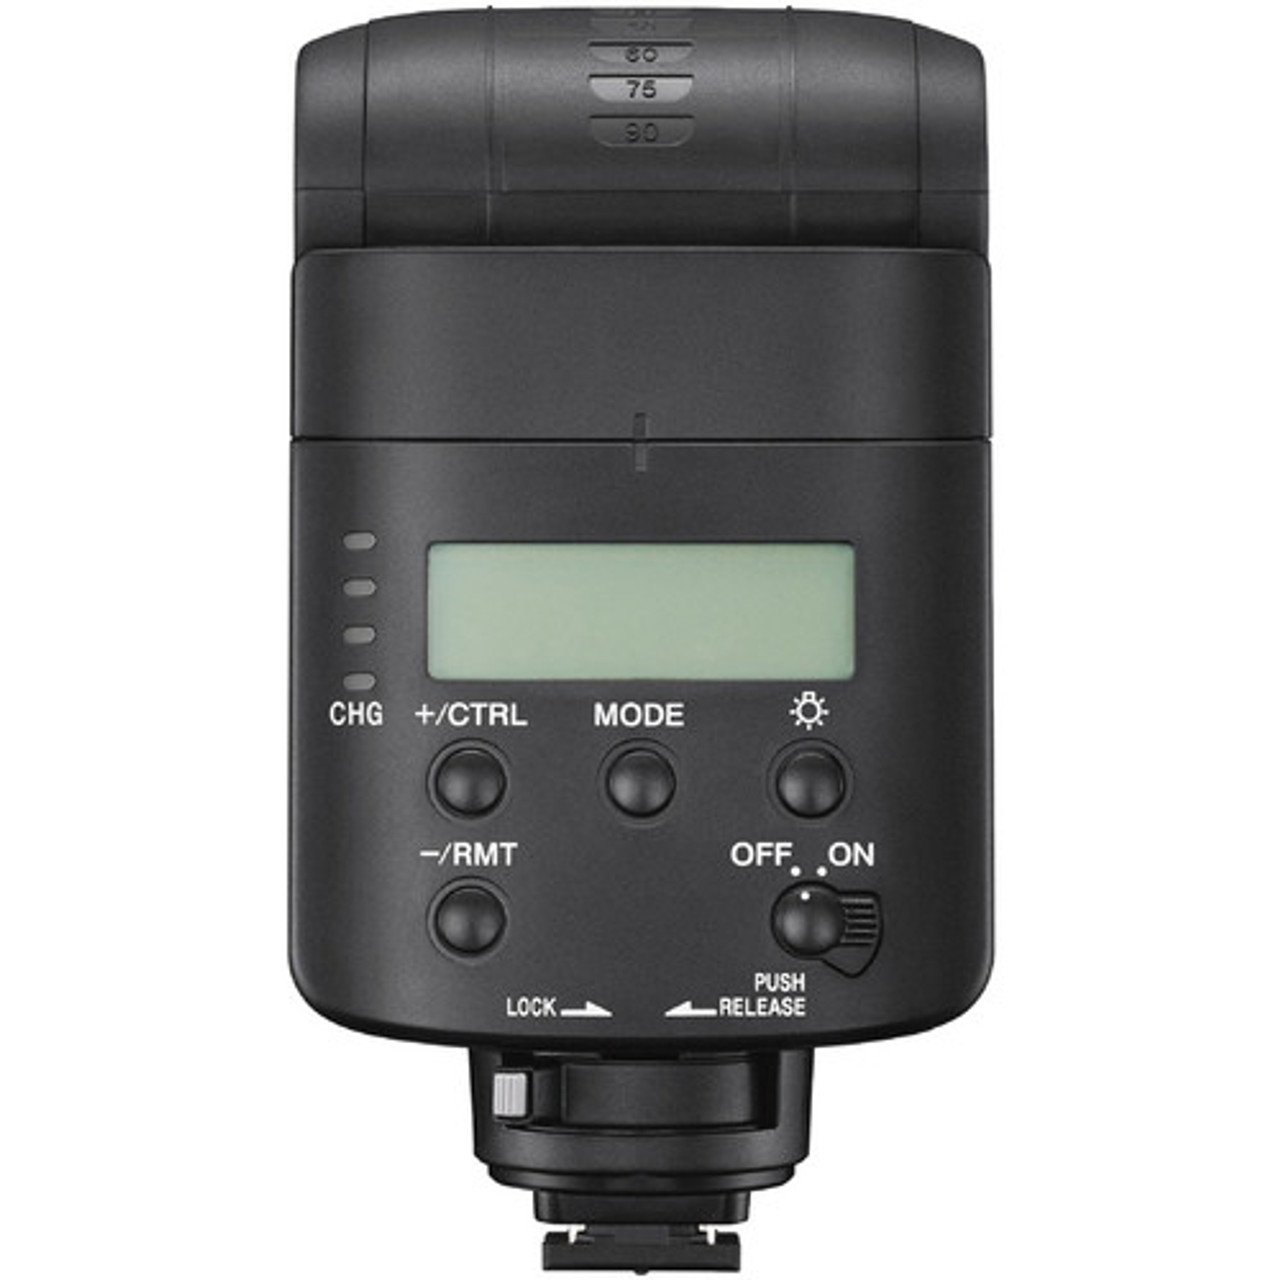 Sony HVL-F32M External Flash for Sony Alpha